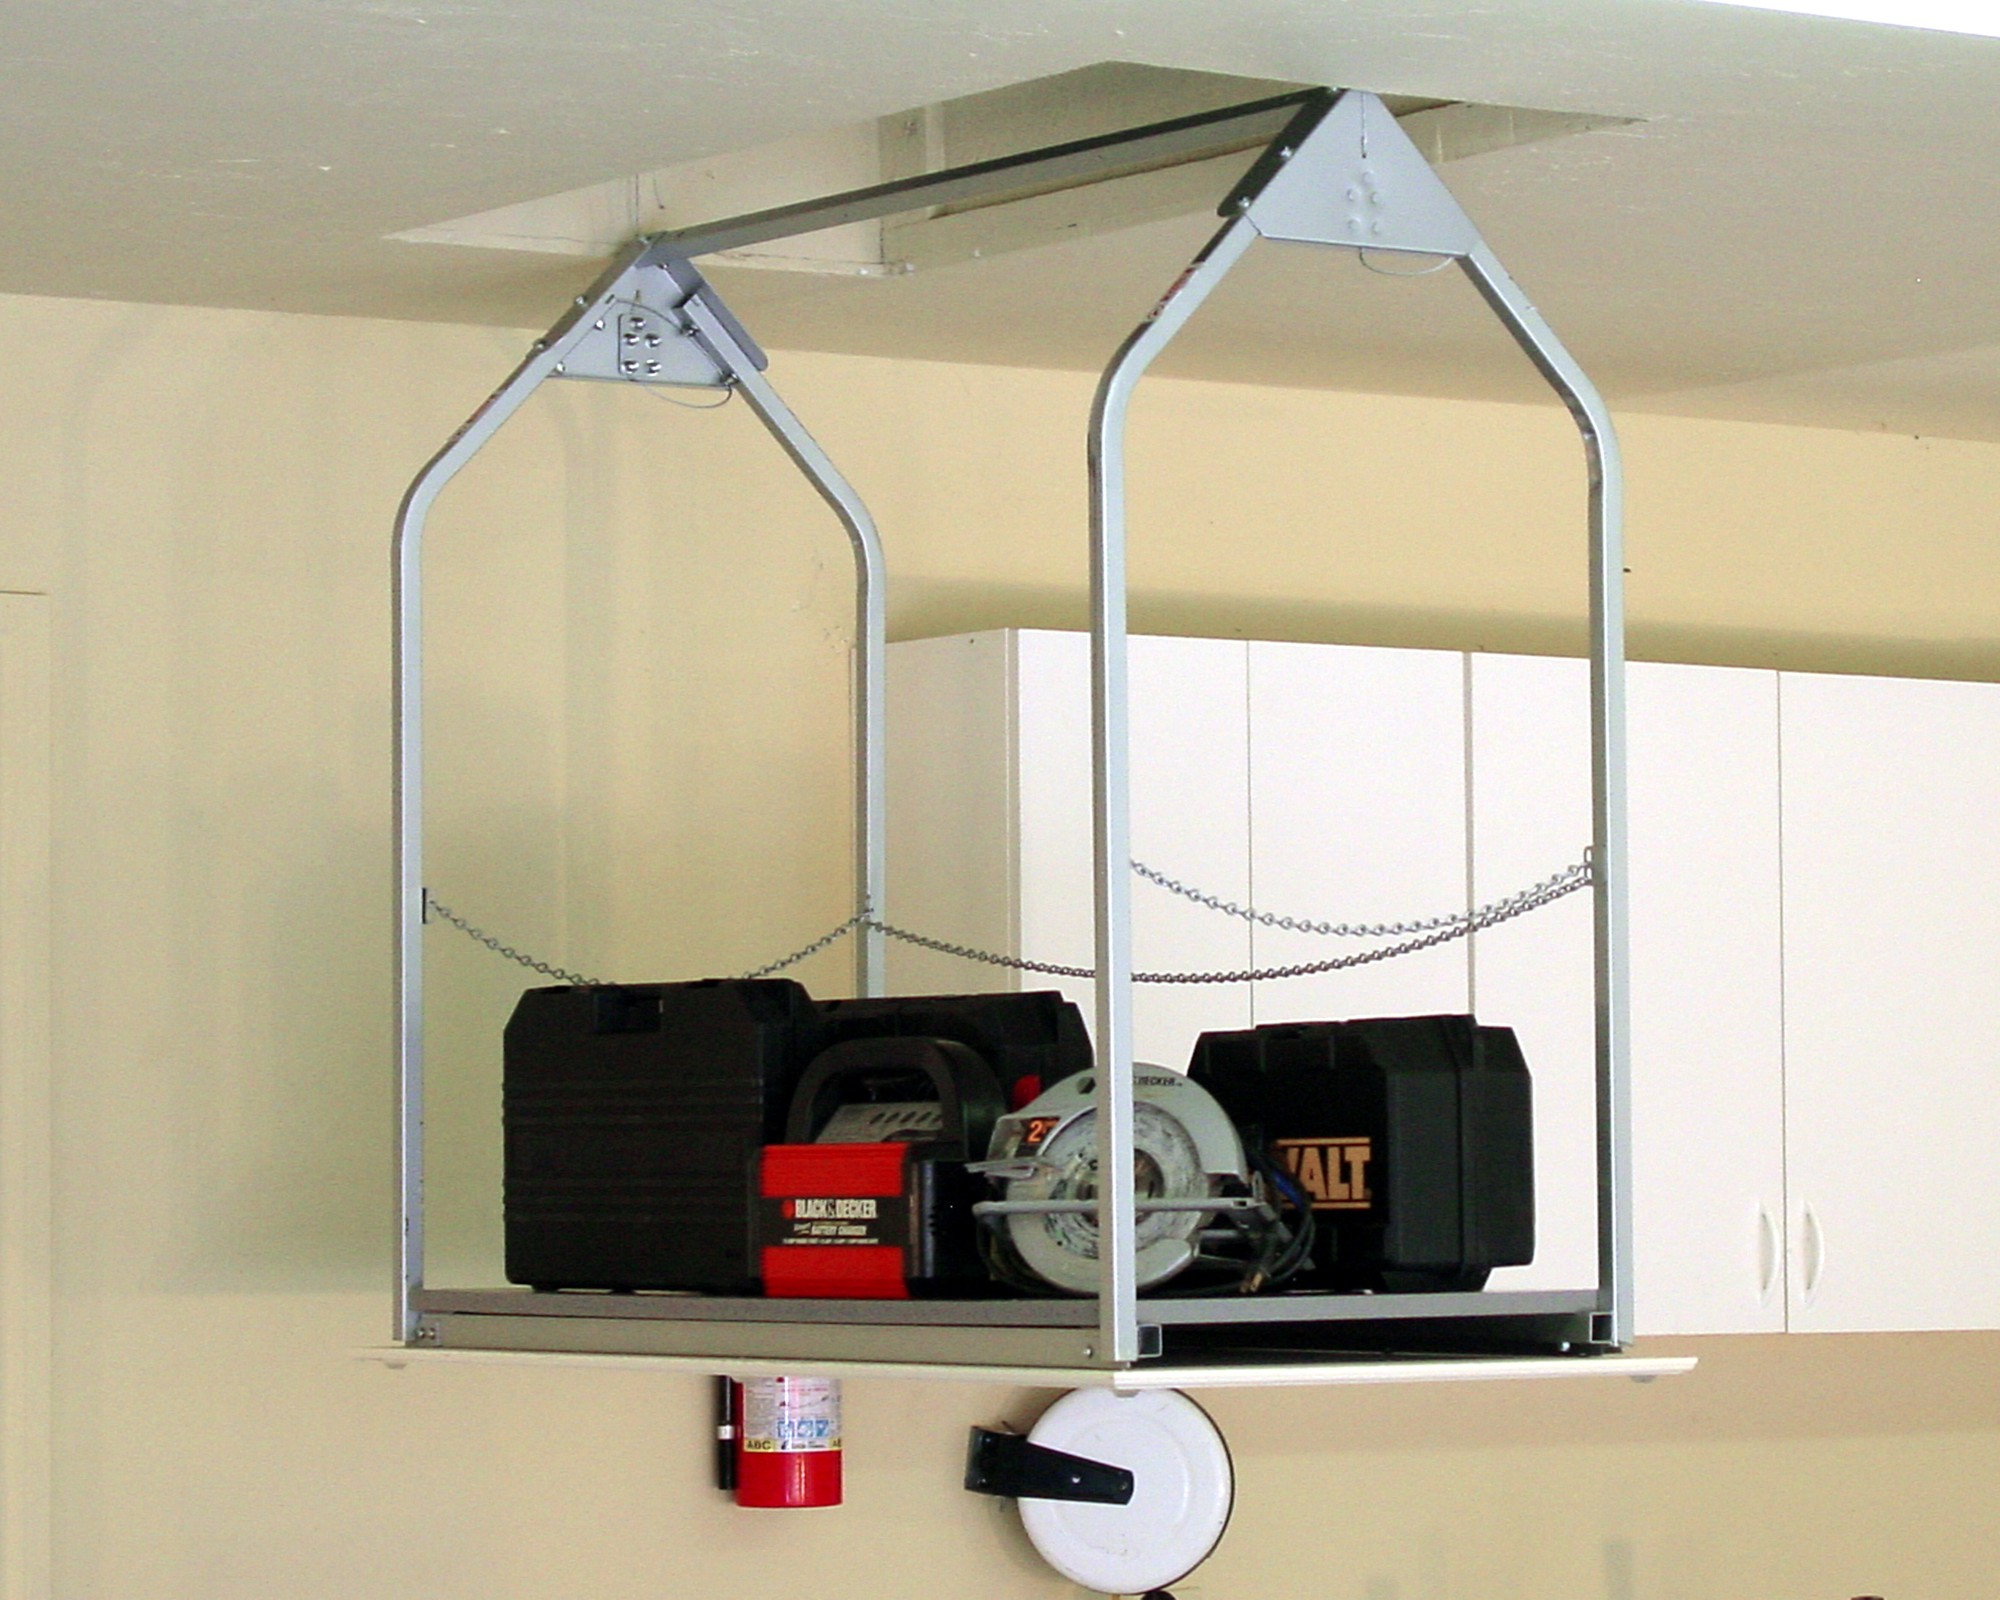 Garage Lift Garage Storage System Home Elevator Of Texas Attic For  Dimensions 2000 X 1600